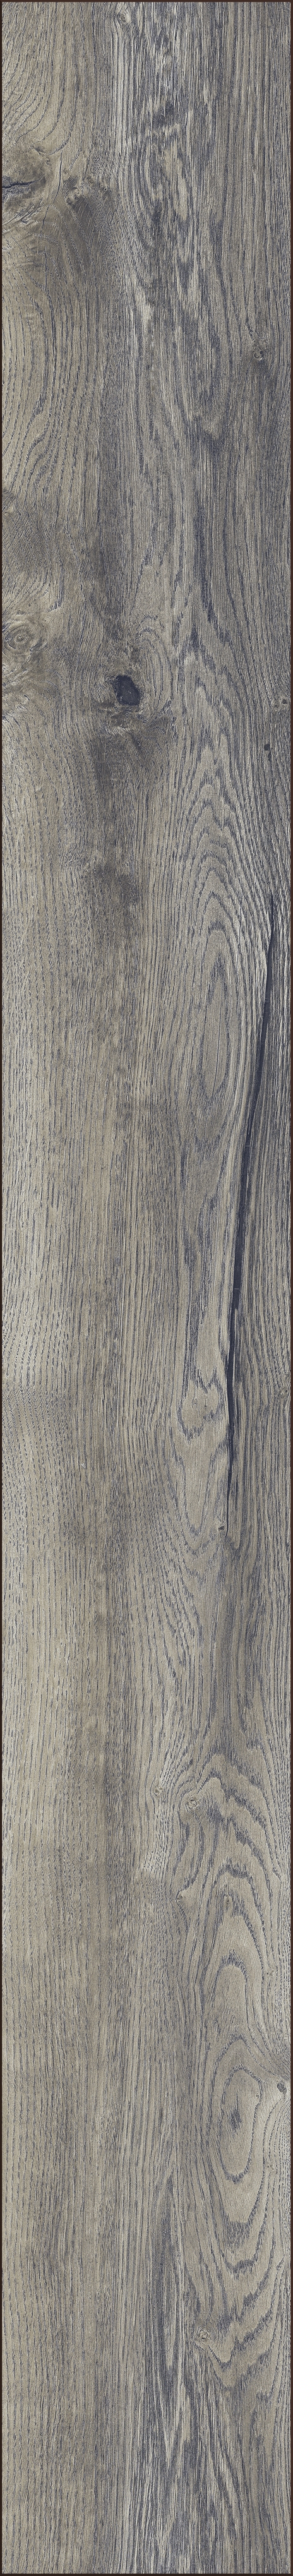 Kronotex amazone harbour oak grey d 3572 from kronotex for Kronotex laminate